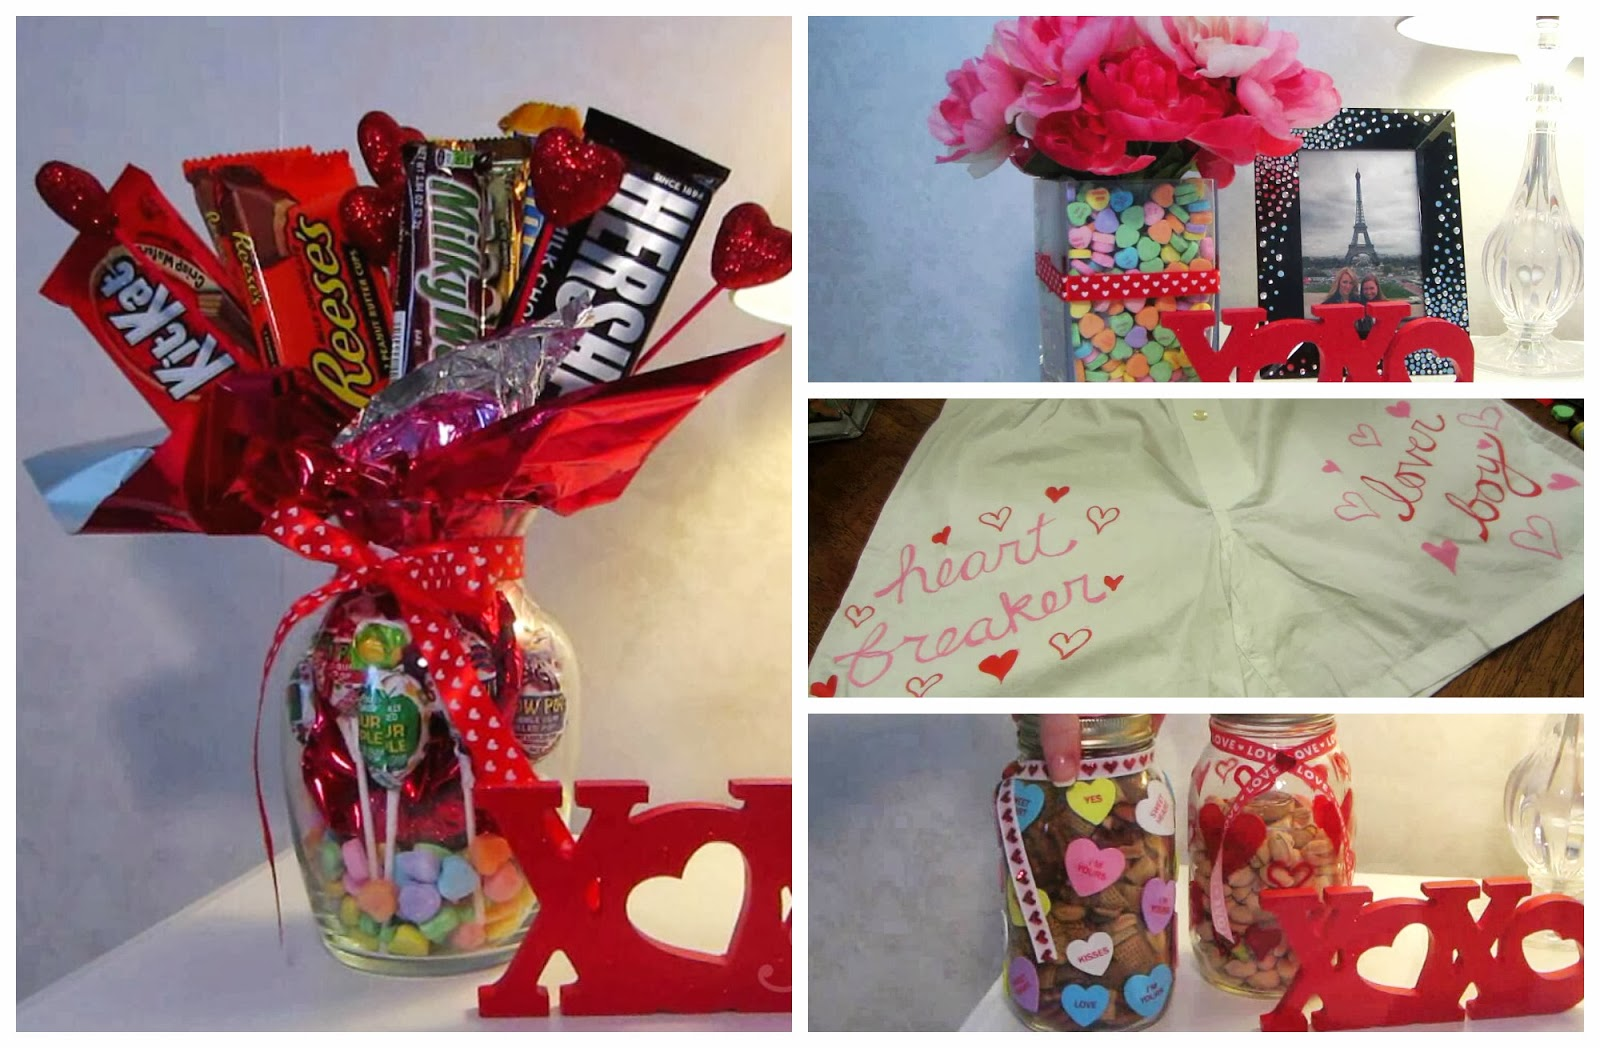 Cute Valentine DIY Gift Ideas!